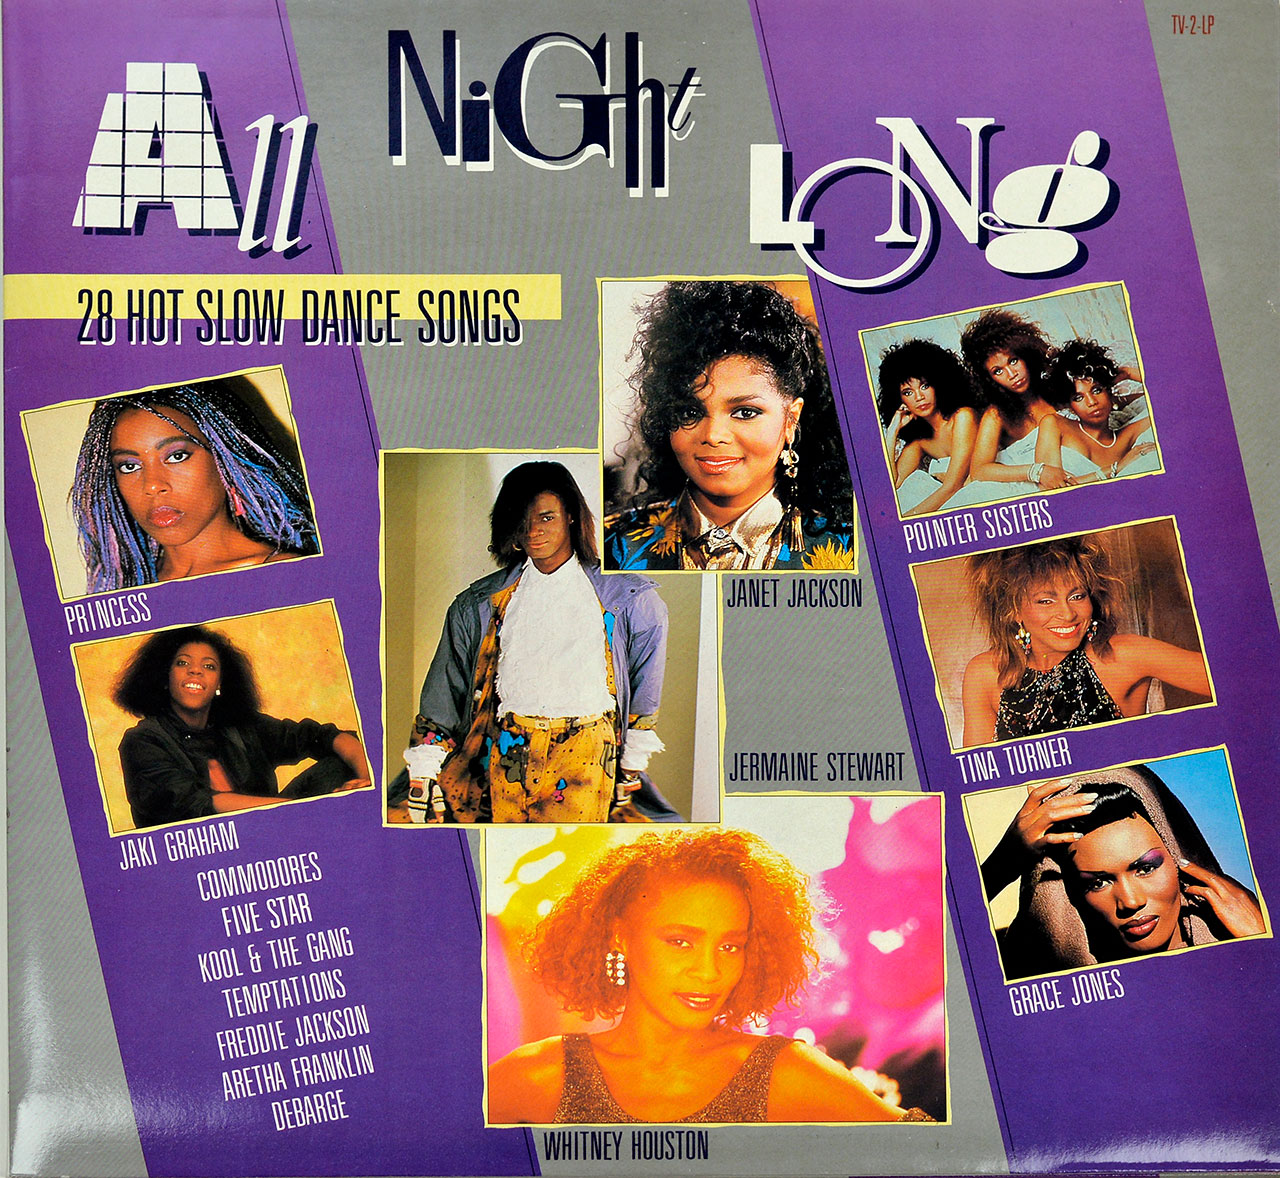 Album Front Cover Photo of VARIOUS ARTISTS - All Night Long